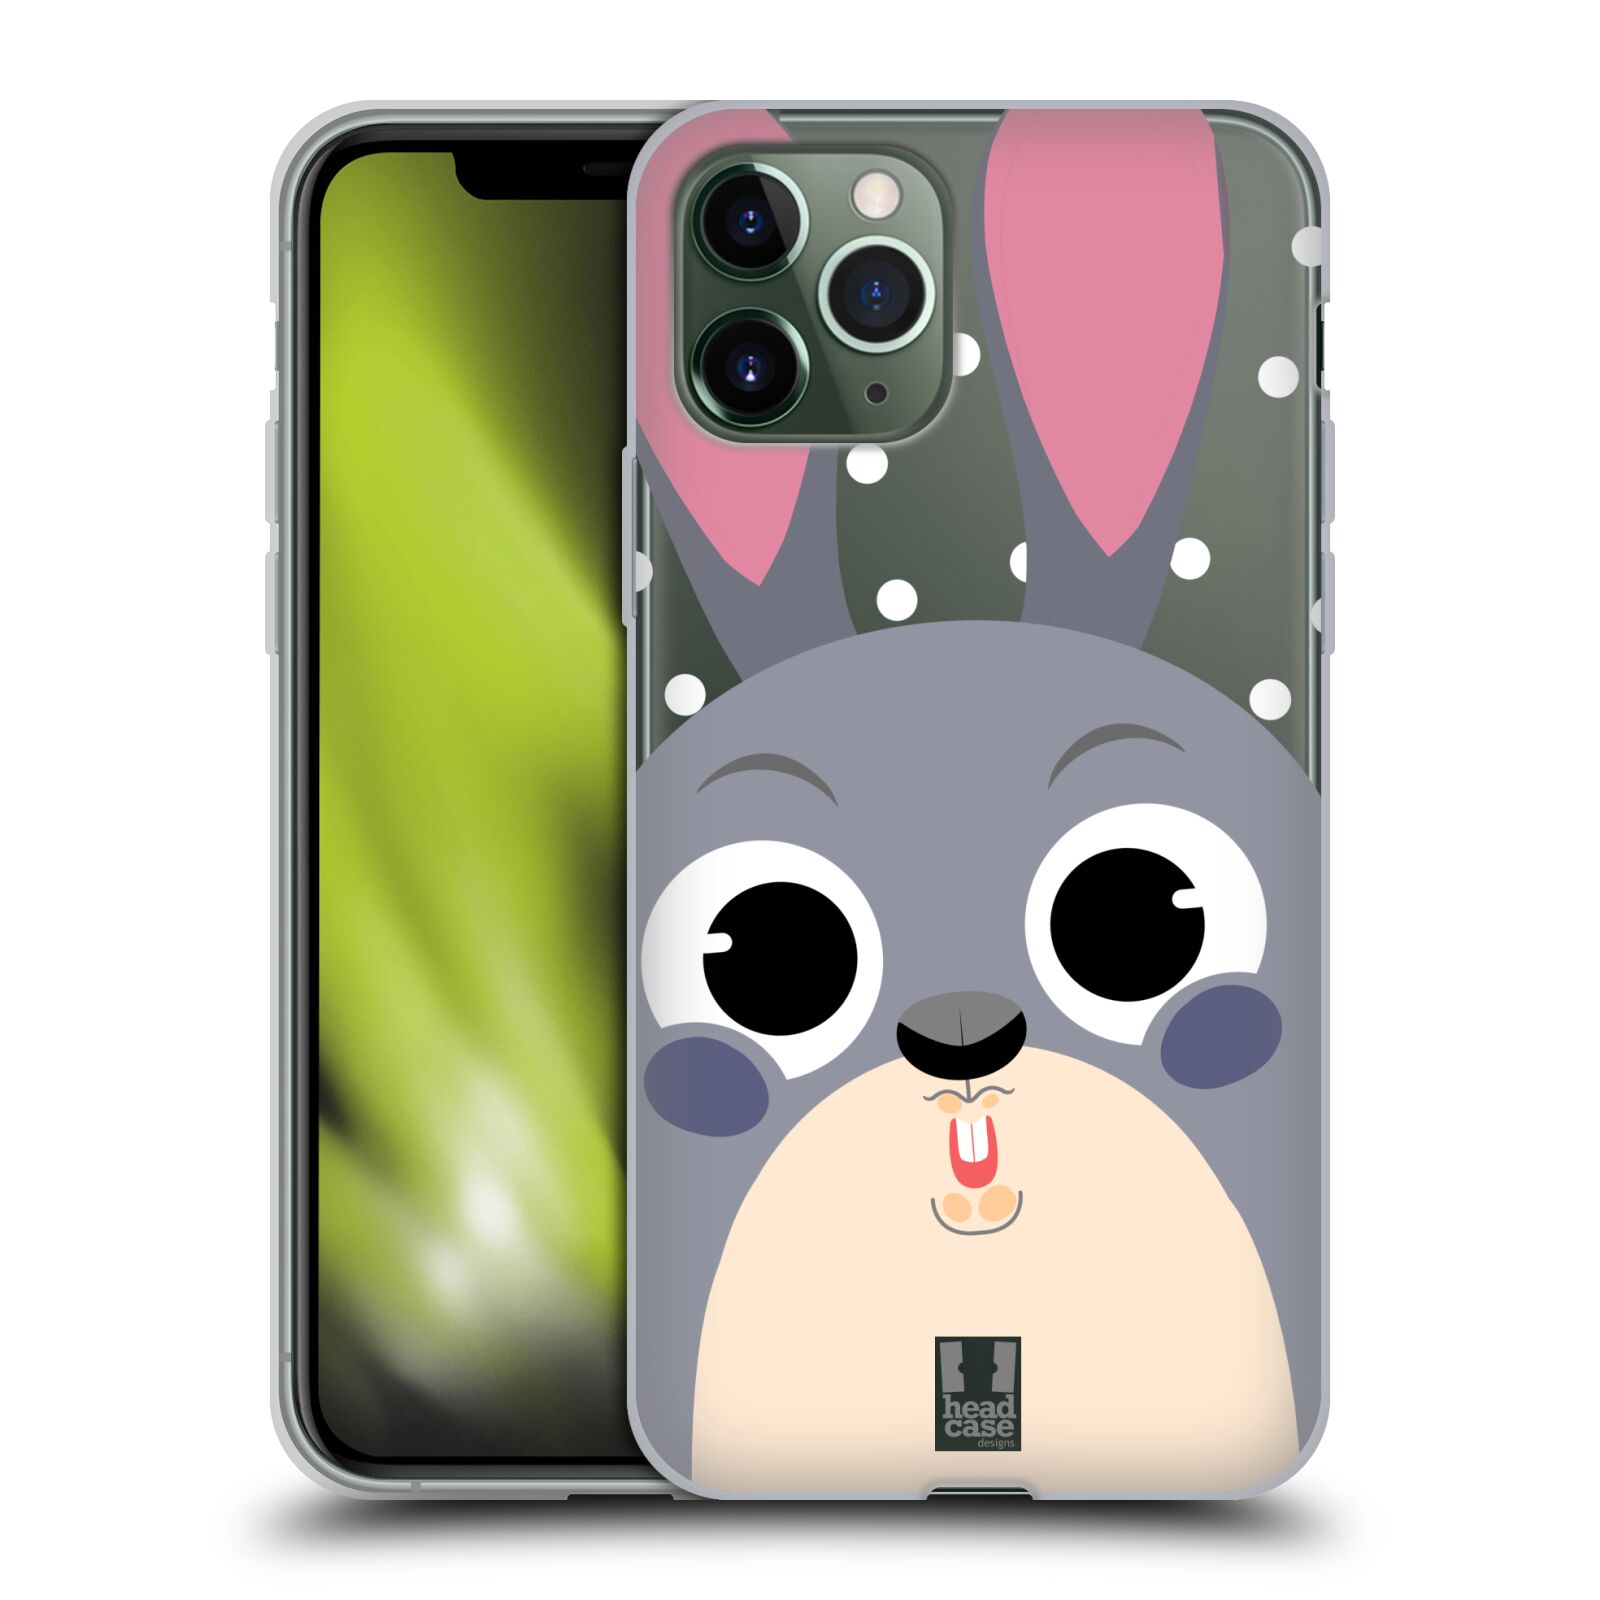 victoria krytu na iphone 7 plus , Silikonové pouzdro na mobil Apple iPhone 11 Pro - Head Case - Králíček roztomilouš